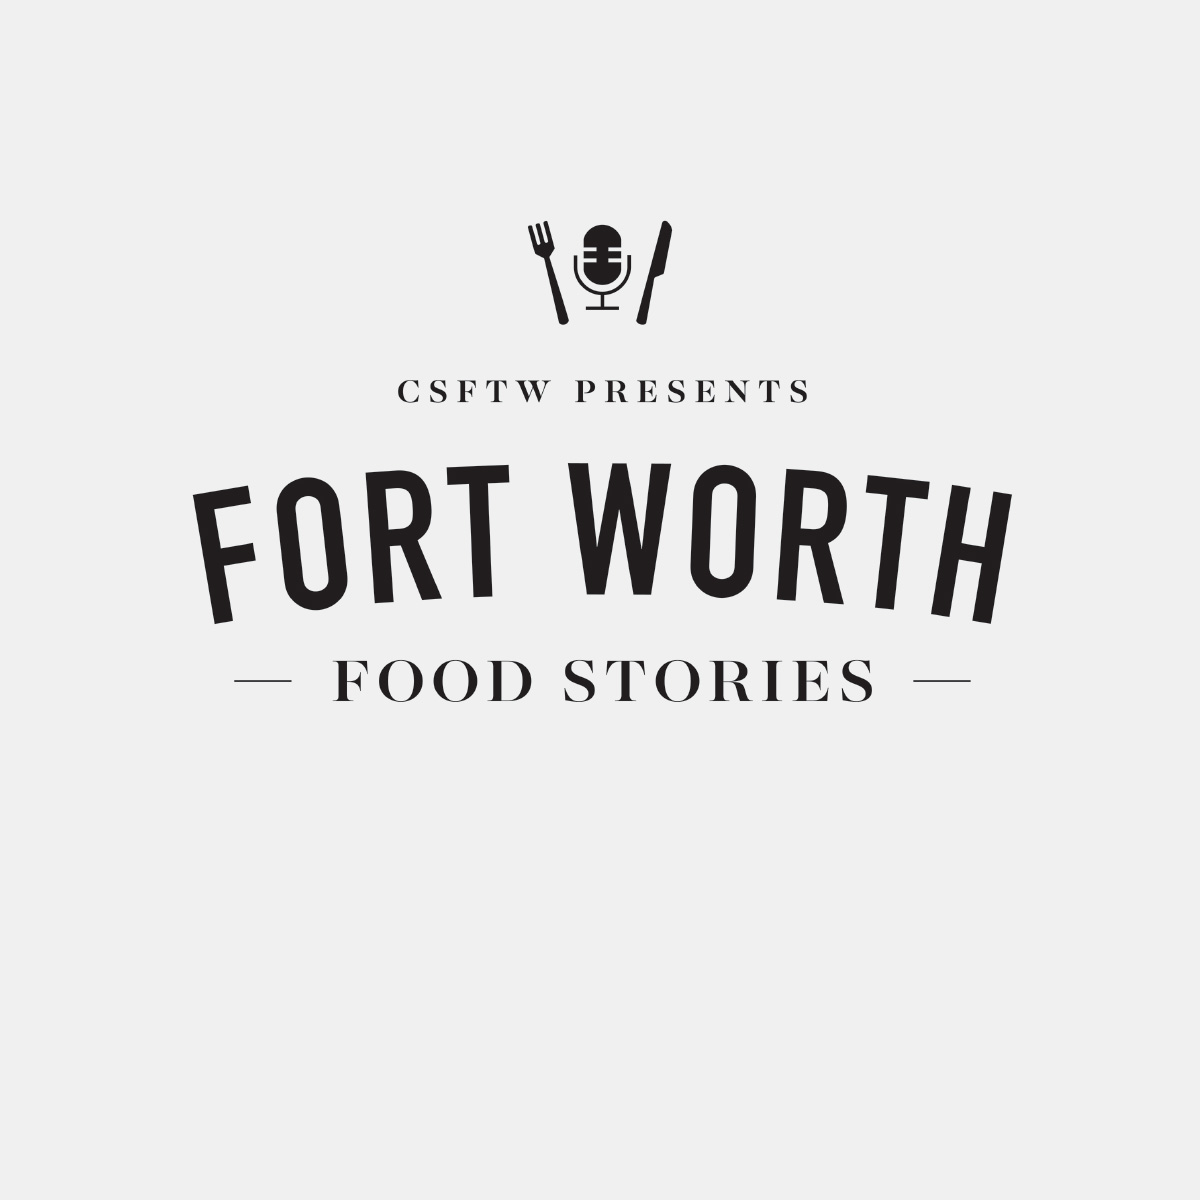 Fort Worth Food Stories